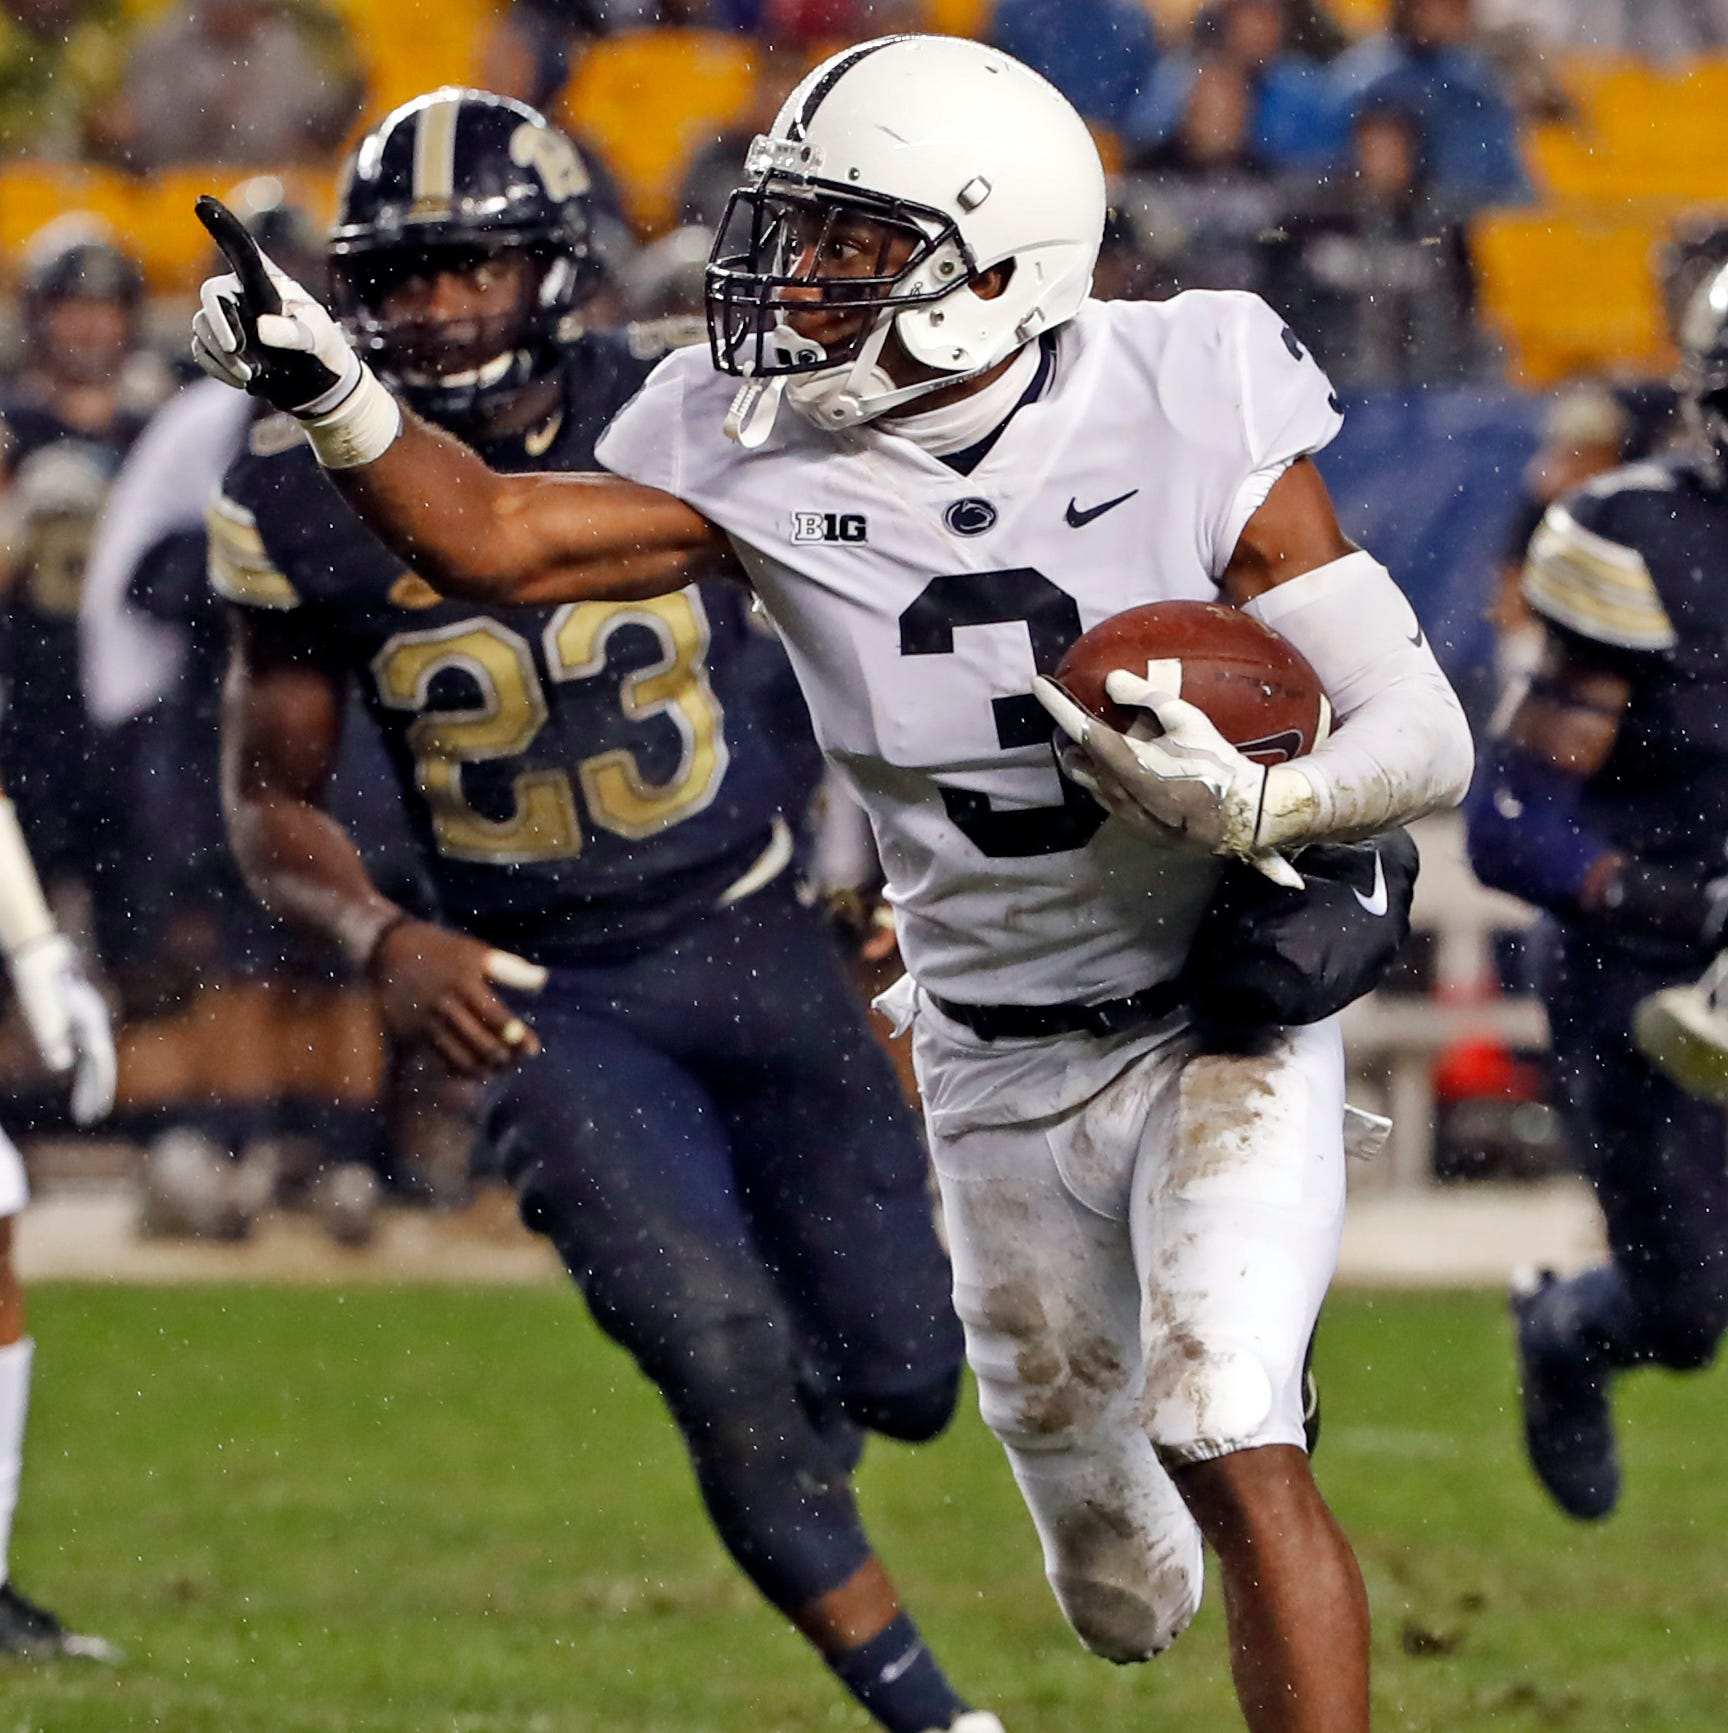 Here's how to watch the Penn State vs. Kent State football game, and what you should know